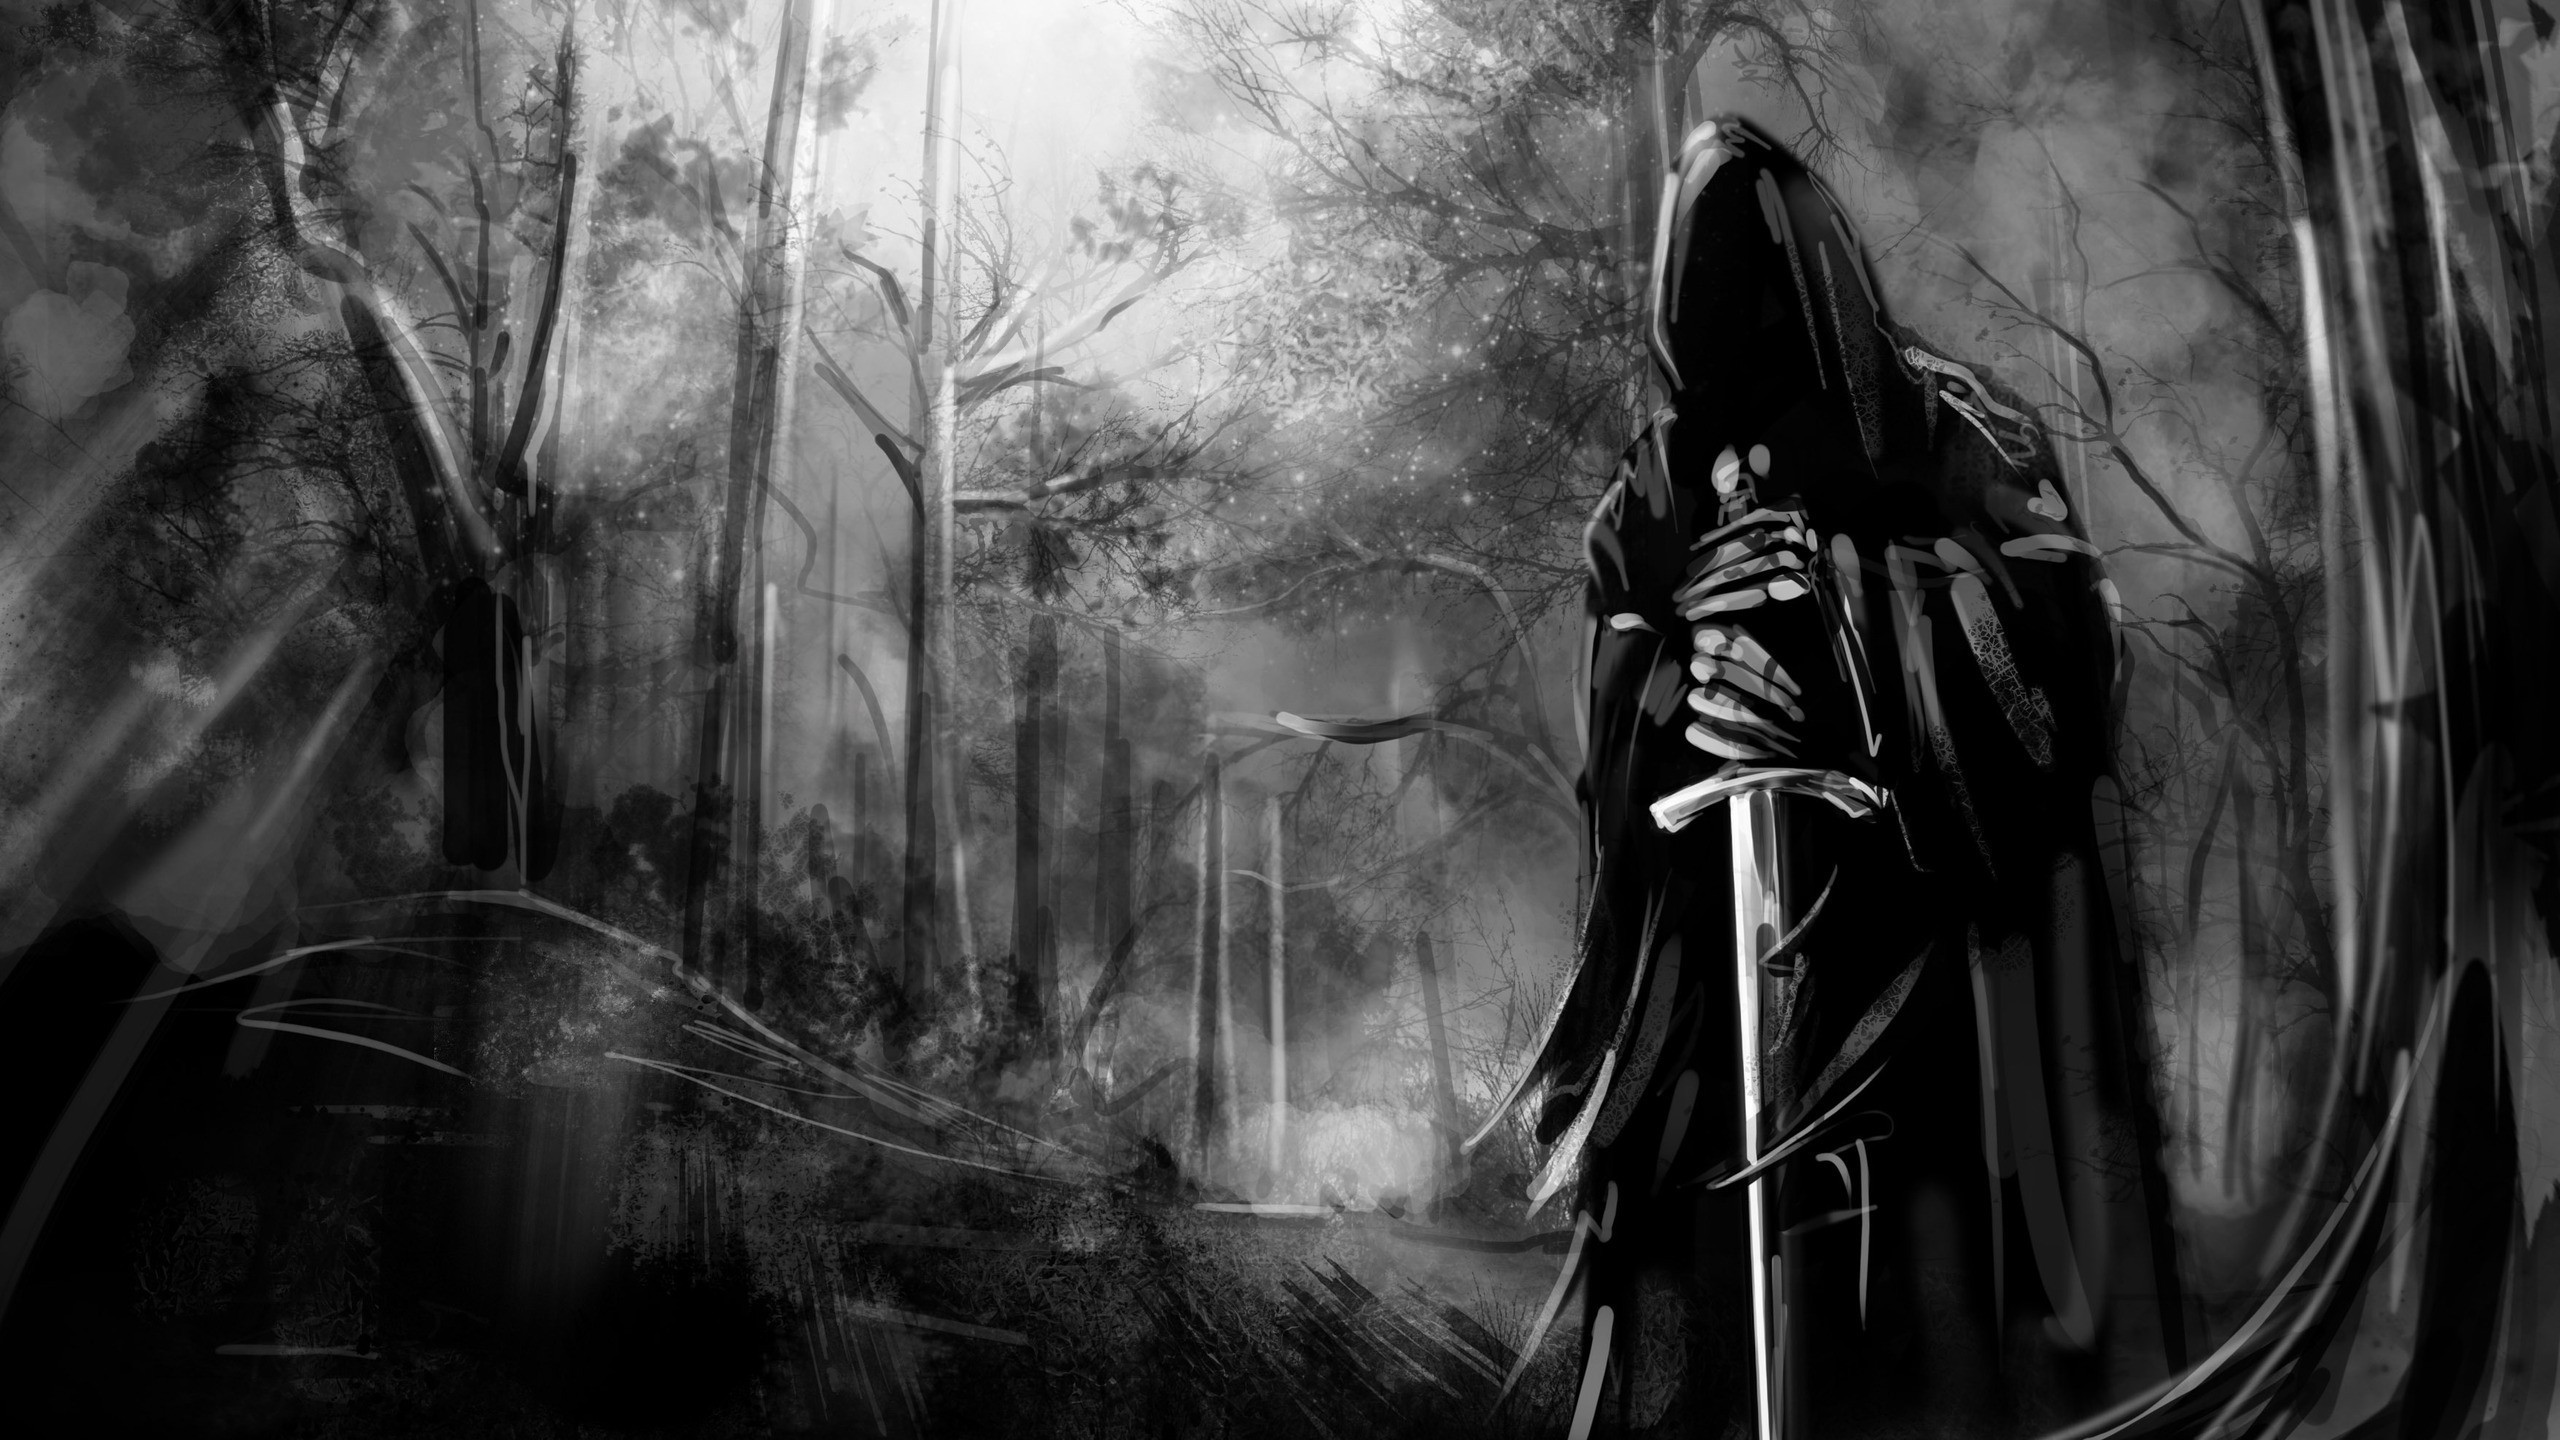 Dark Forest, Black And White, Sword, Scary